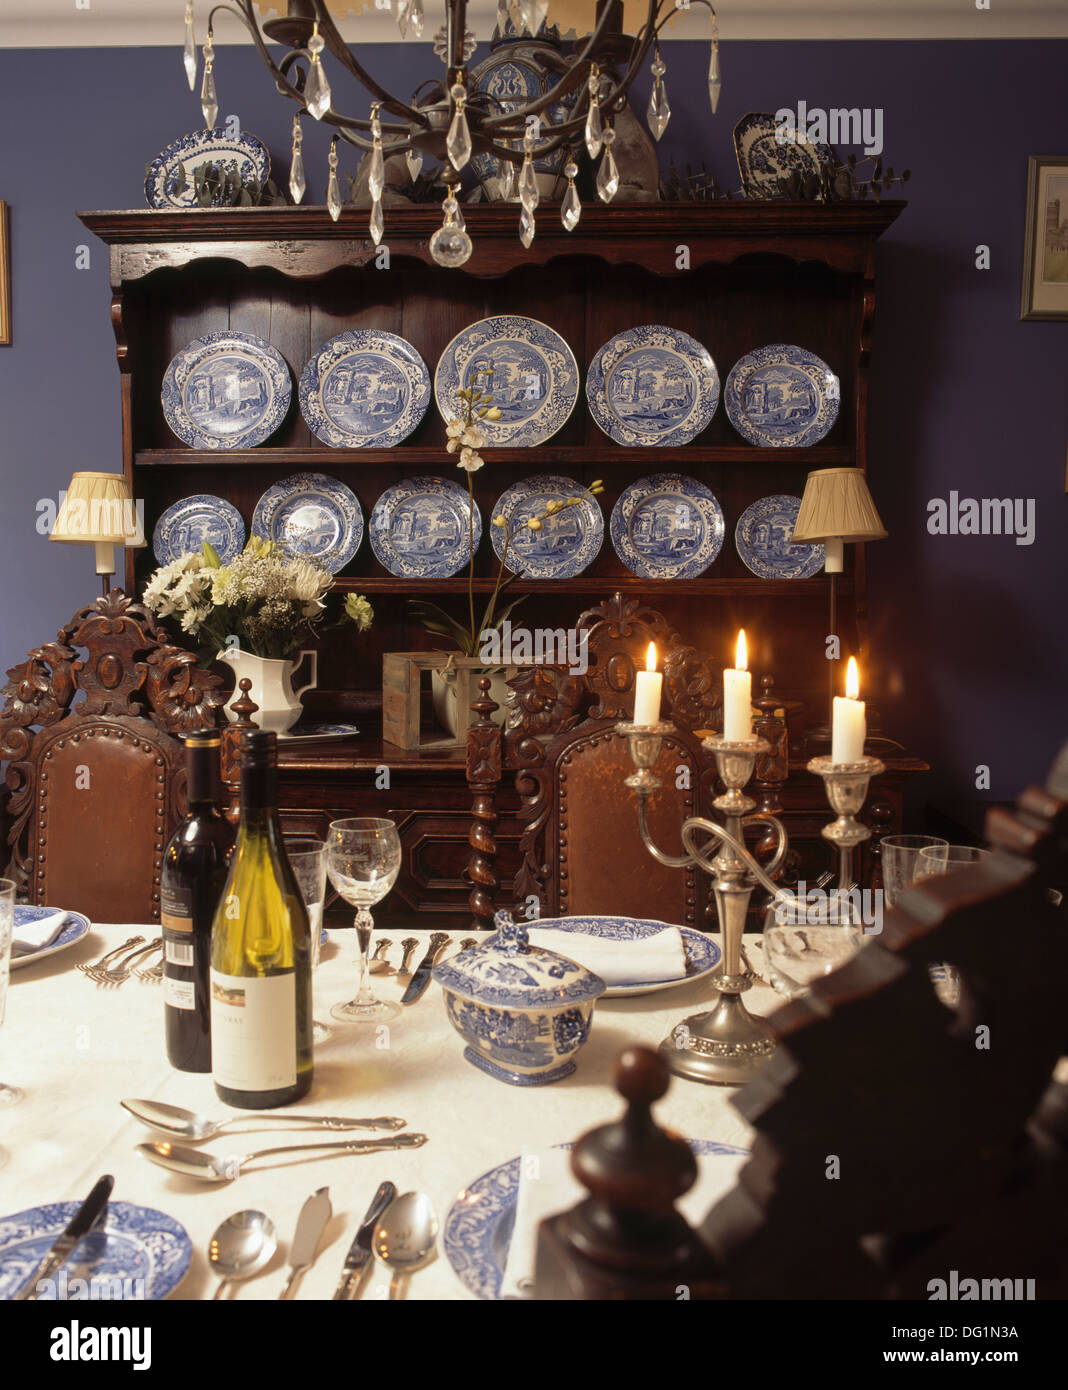 Blue And White Spode Plates On Antique Oak Dresser In Dining Room With Table Set For Dinner Candles Wine